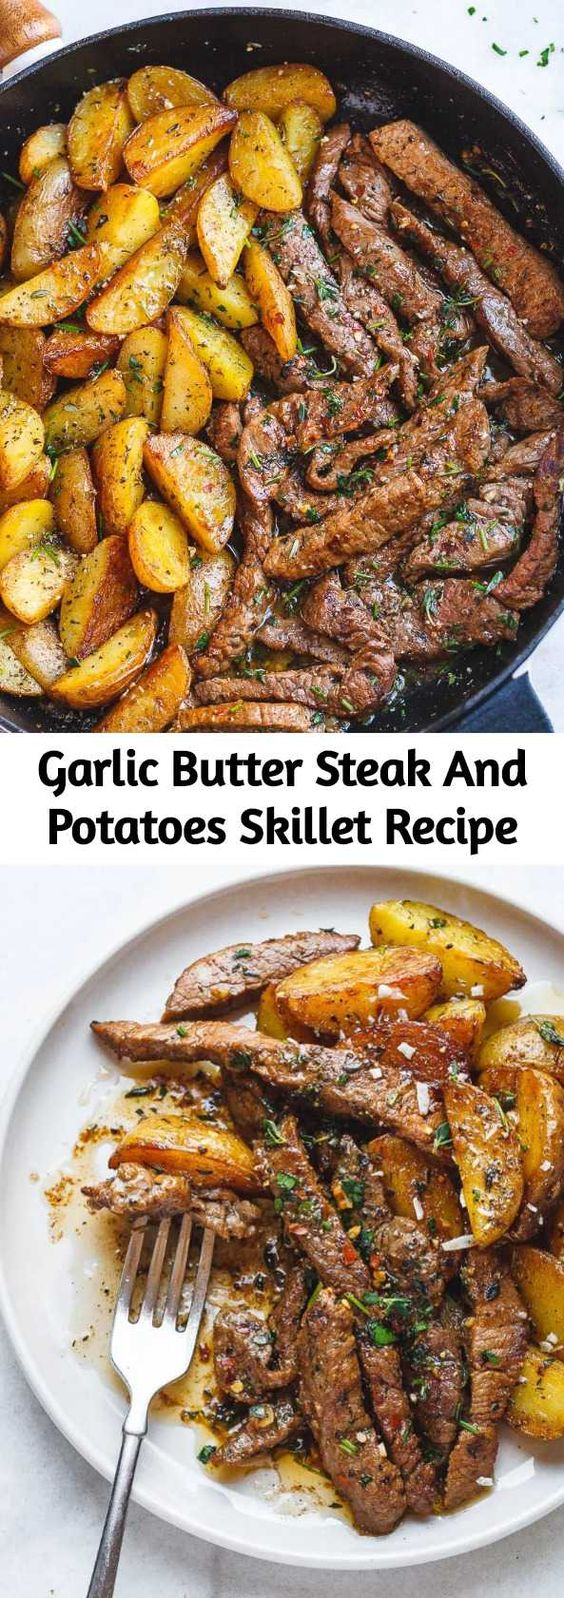 Easy Garlic Butter Steak and Potatoes Skillet with juicy seared steak and crispy roasted potatoes all oven baked in one pan. Nothing goes together better than garlic steak and potatoes!